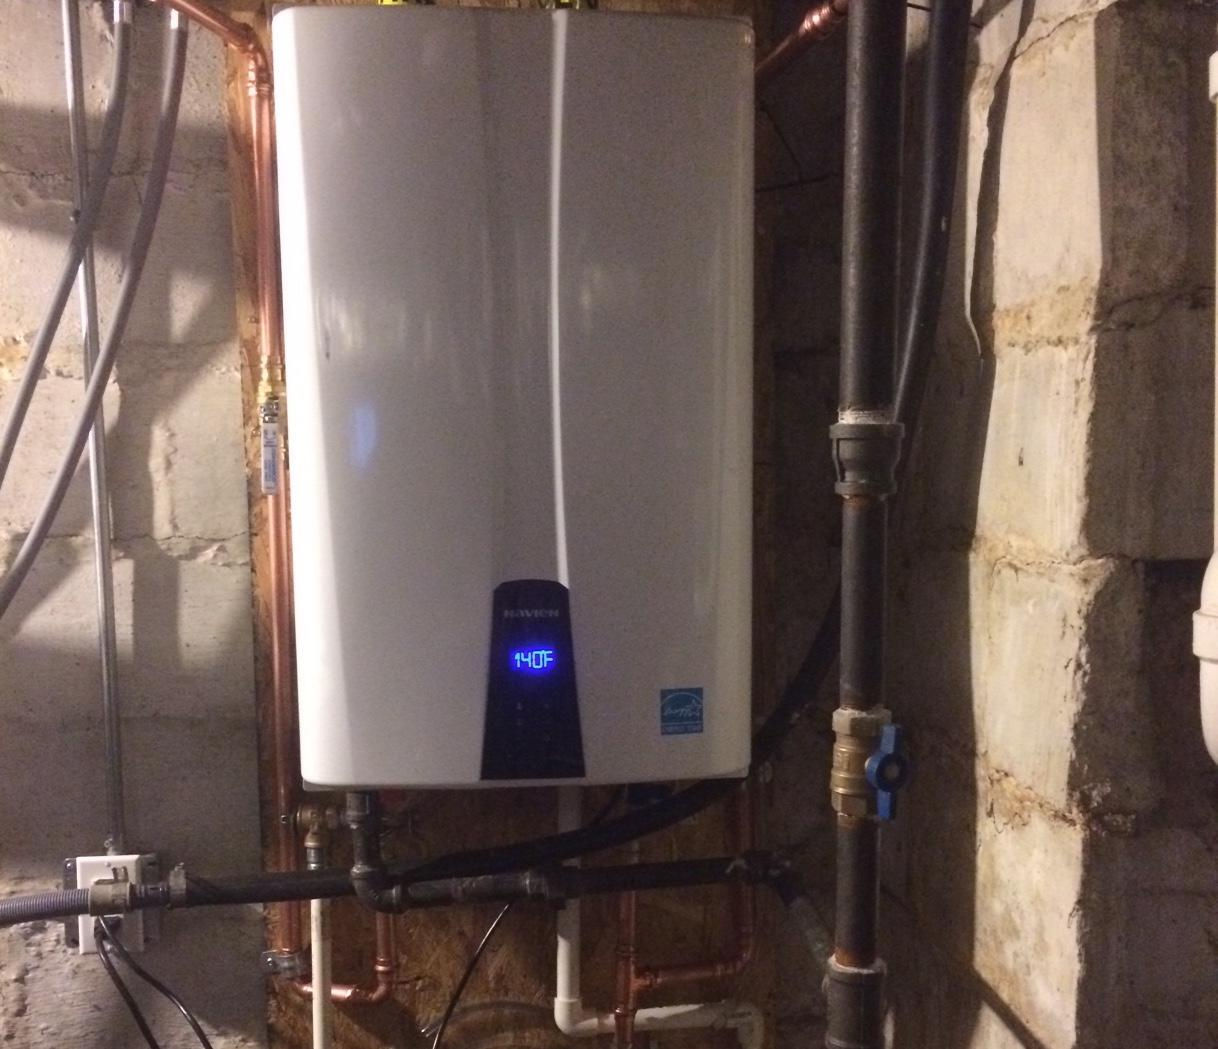 Hot Water Heater Replacement in Natick, MA - After Photo